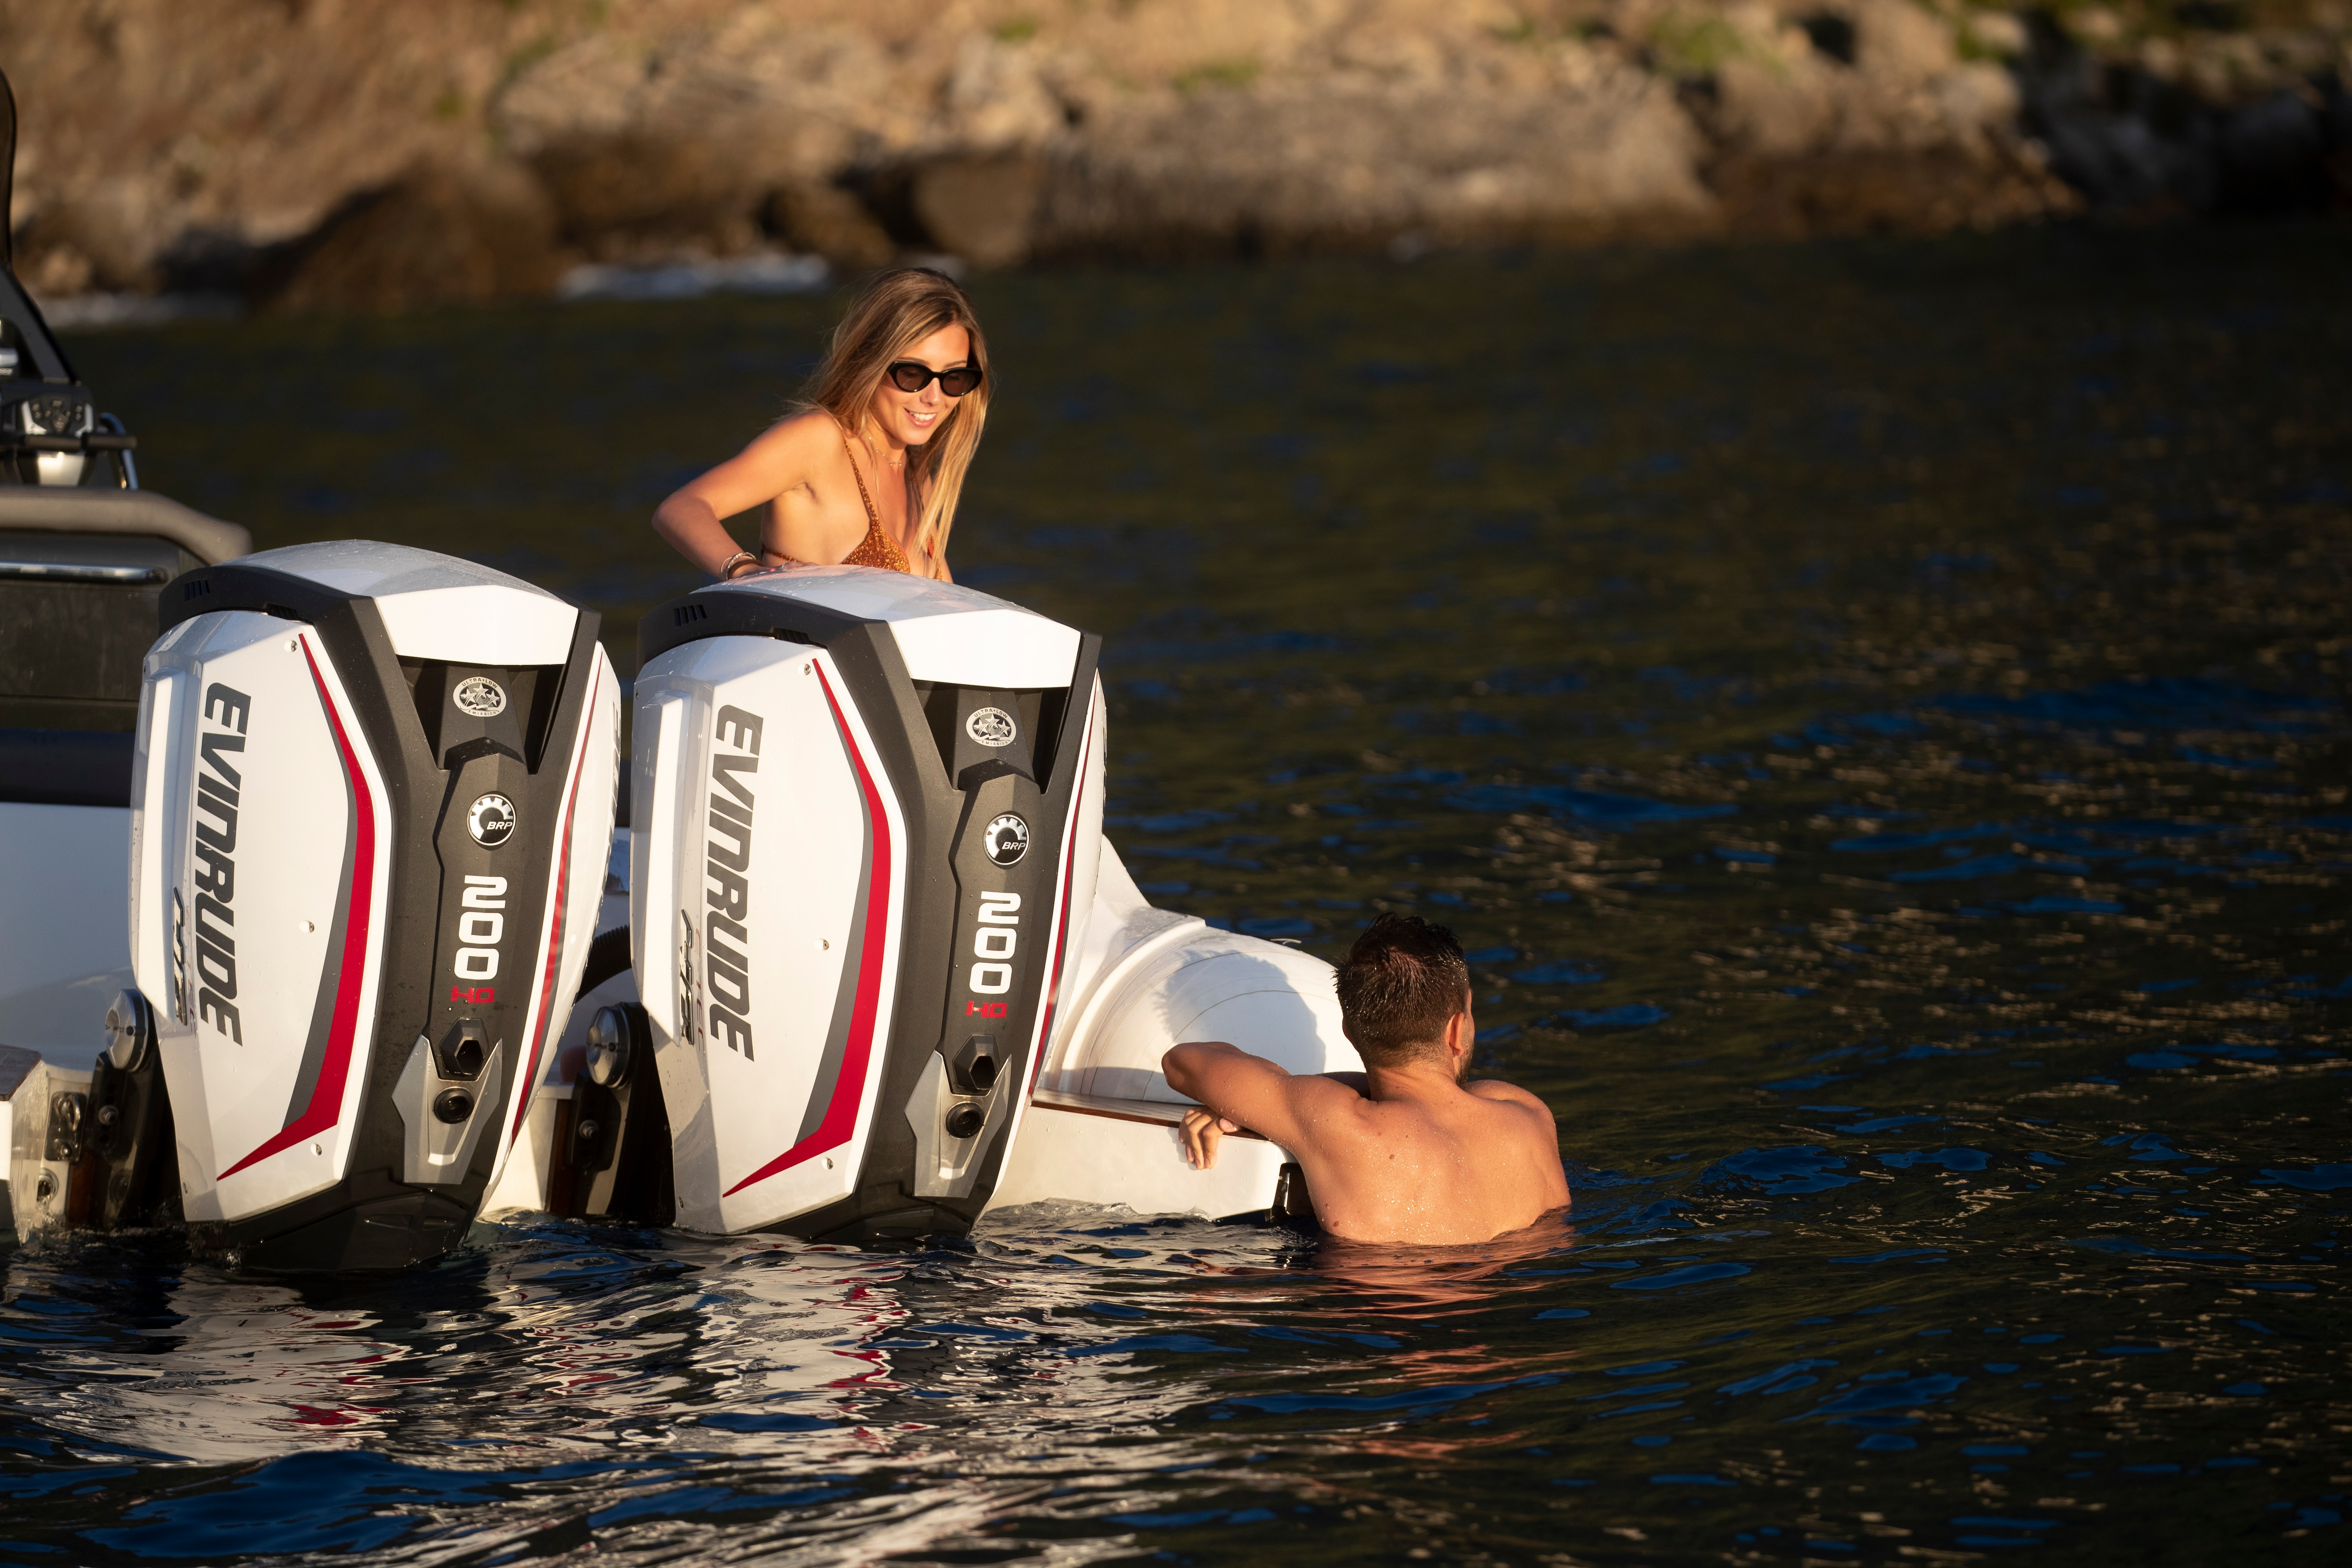 A man and a woman swimming close to a boat yielding an Evinrude motor